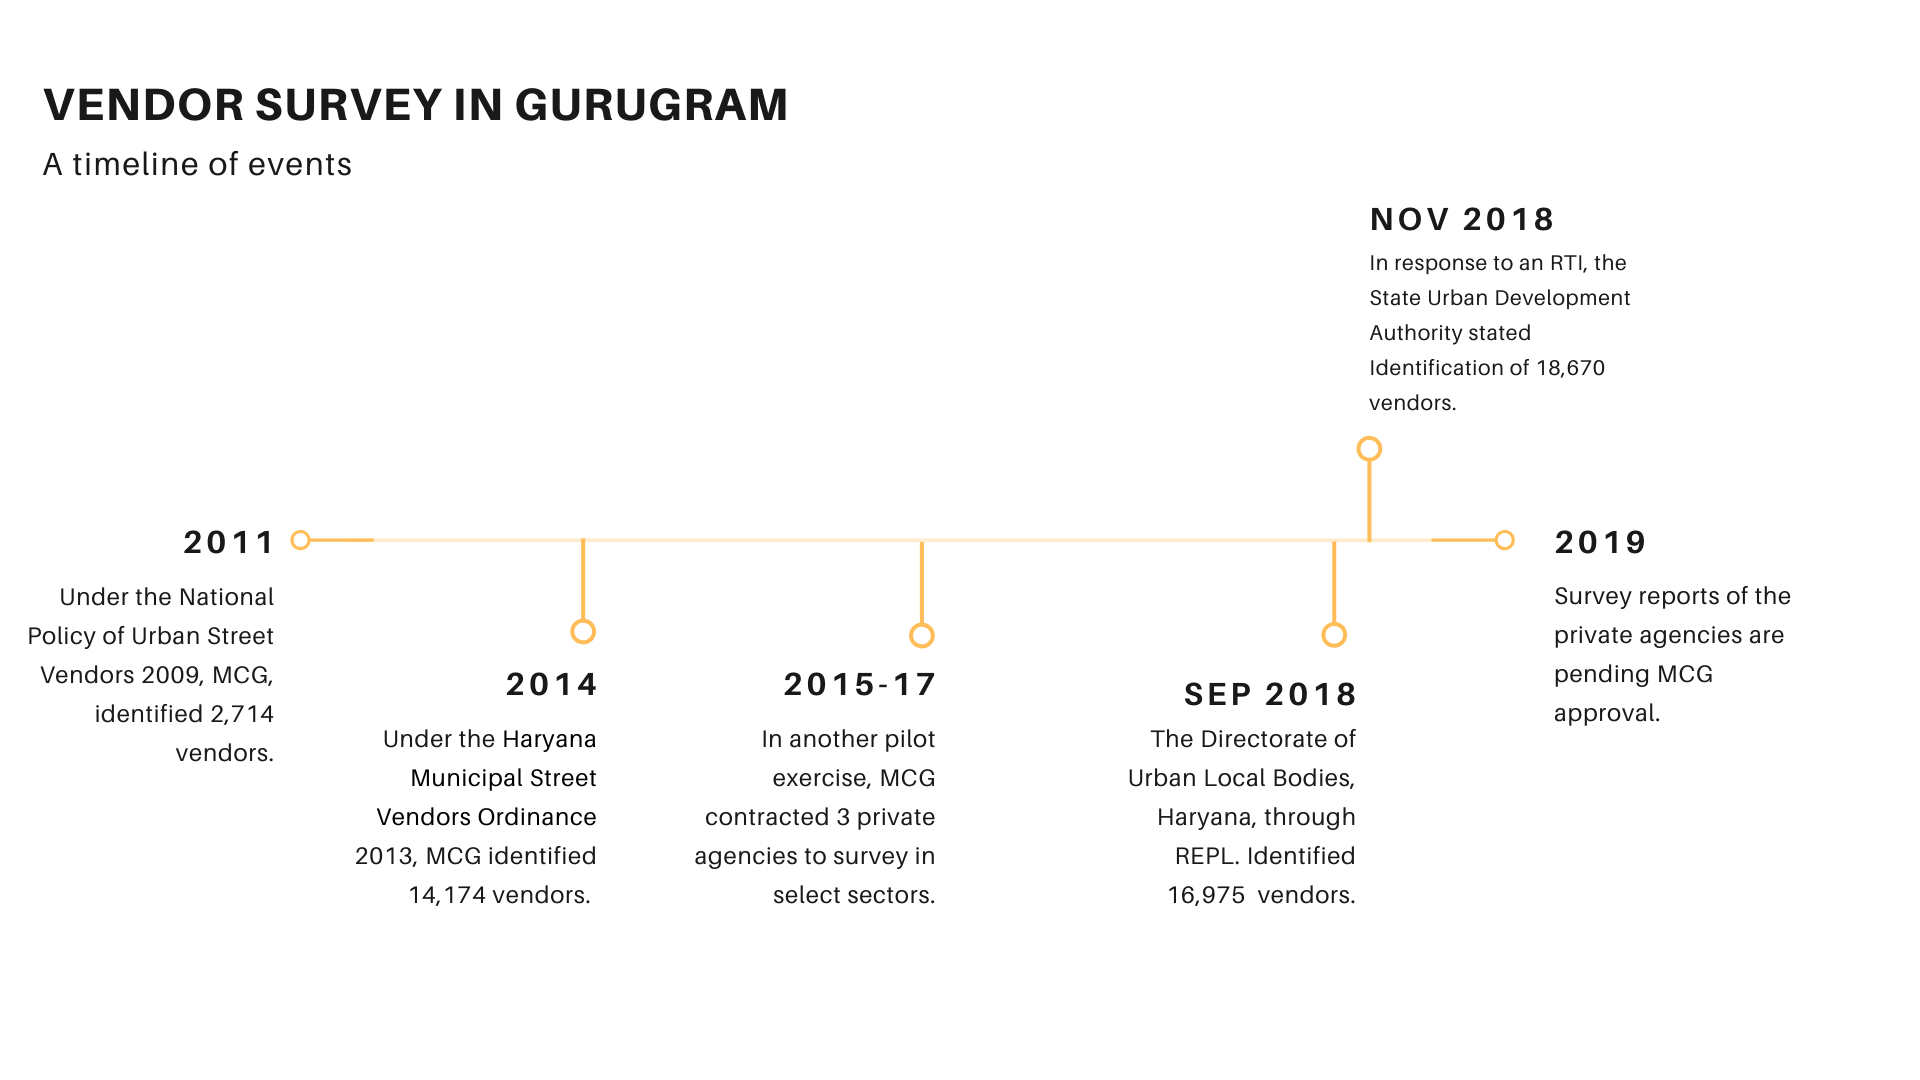 Timeline of surveys in Gurugram